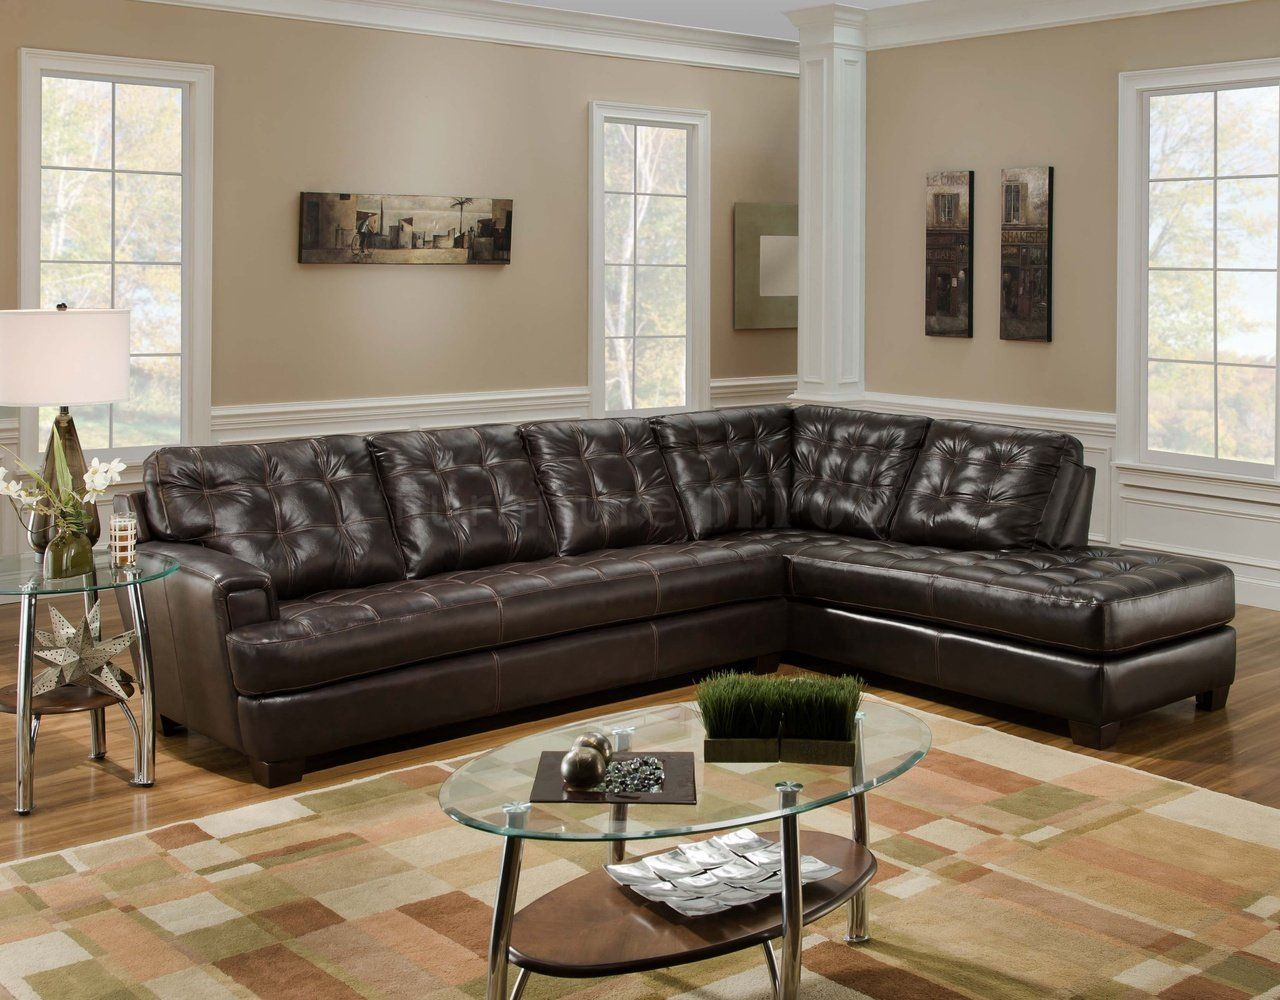 L Shape Brown Leather Couch Chicory Brown Tufted Top Grain